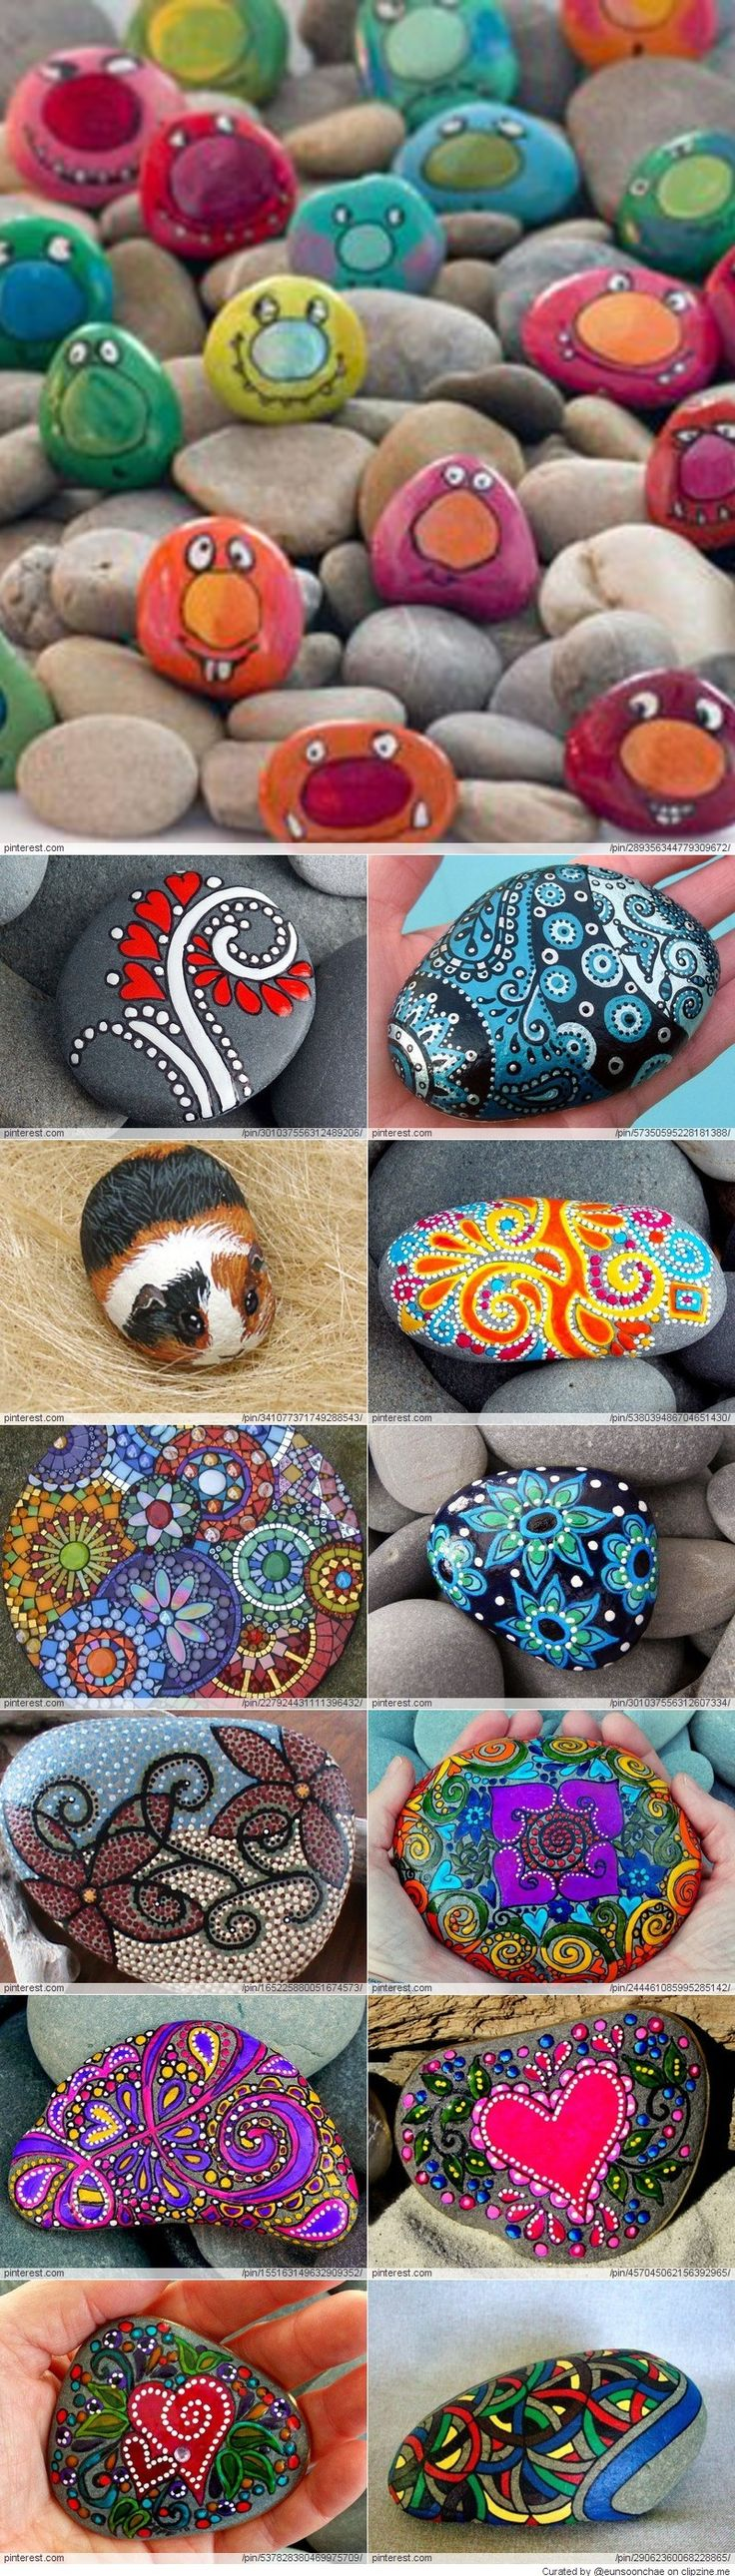 Great Idea for Stone Art  medomakcamp.com #crafts #maine #medomakcamp